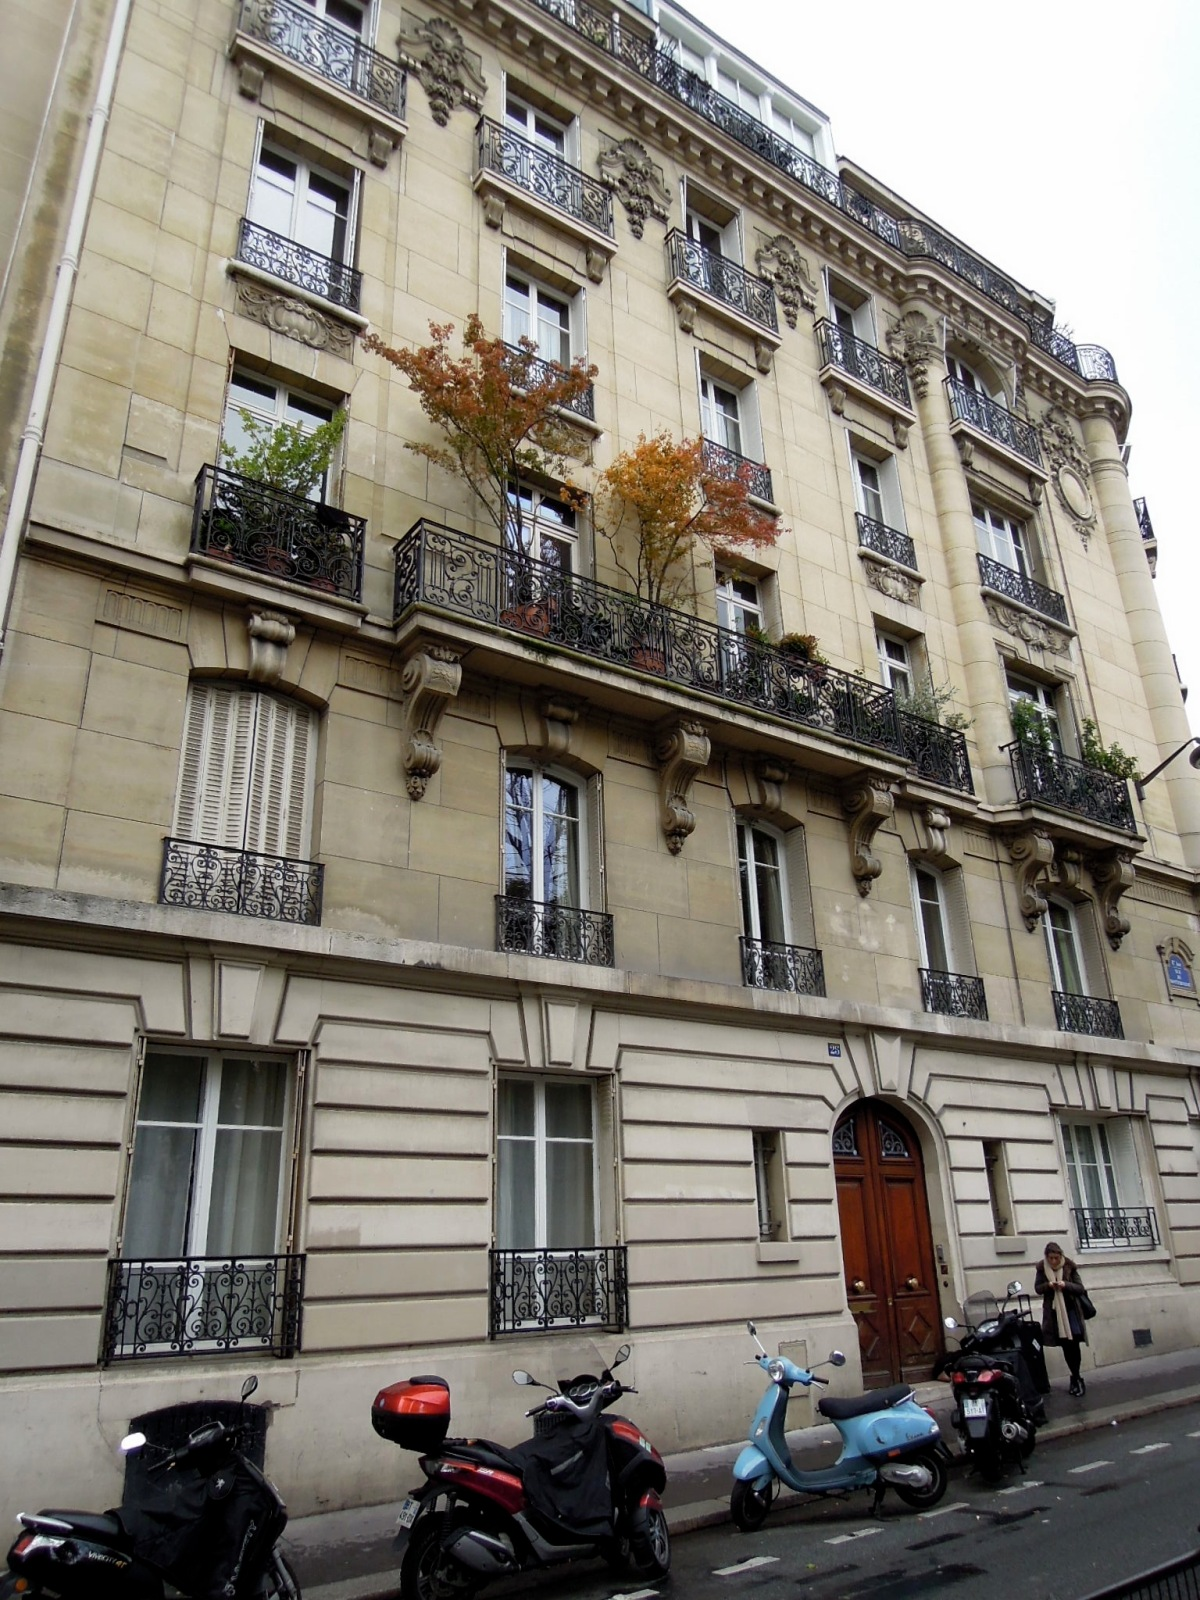 Parisian apartment building with potted trees on the balcony